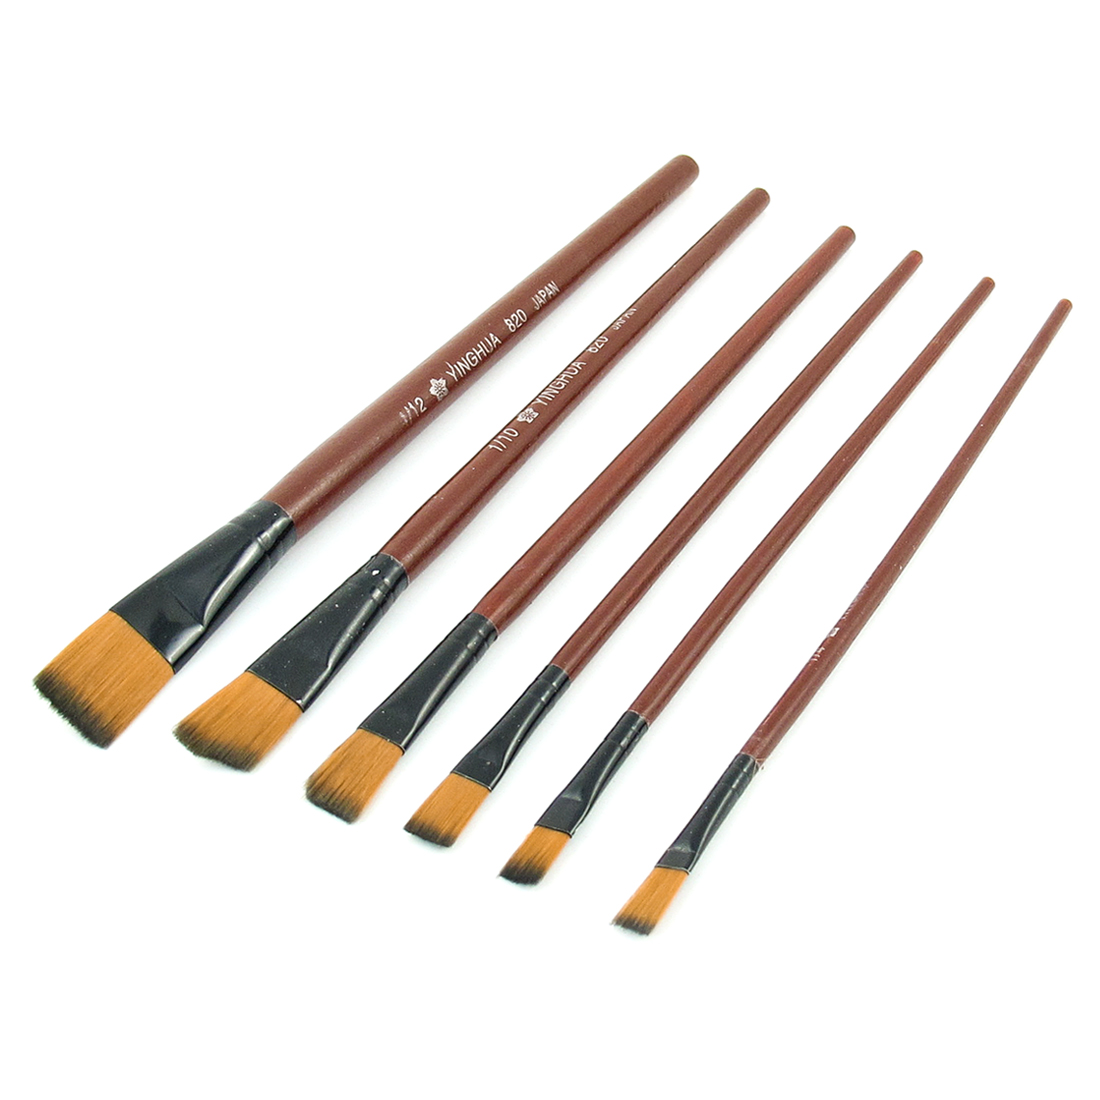 Dark Brown Wood Handle Artist Art Oil Painting Paint Brushes 6 in 1 Set